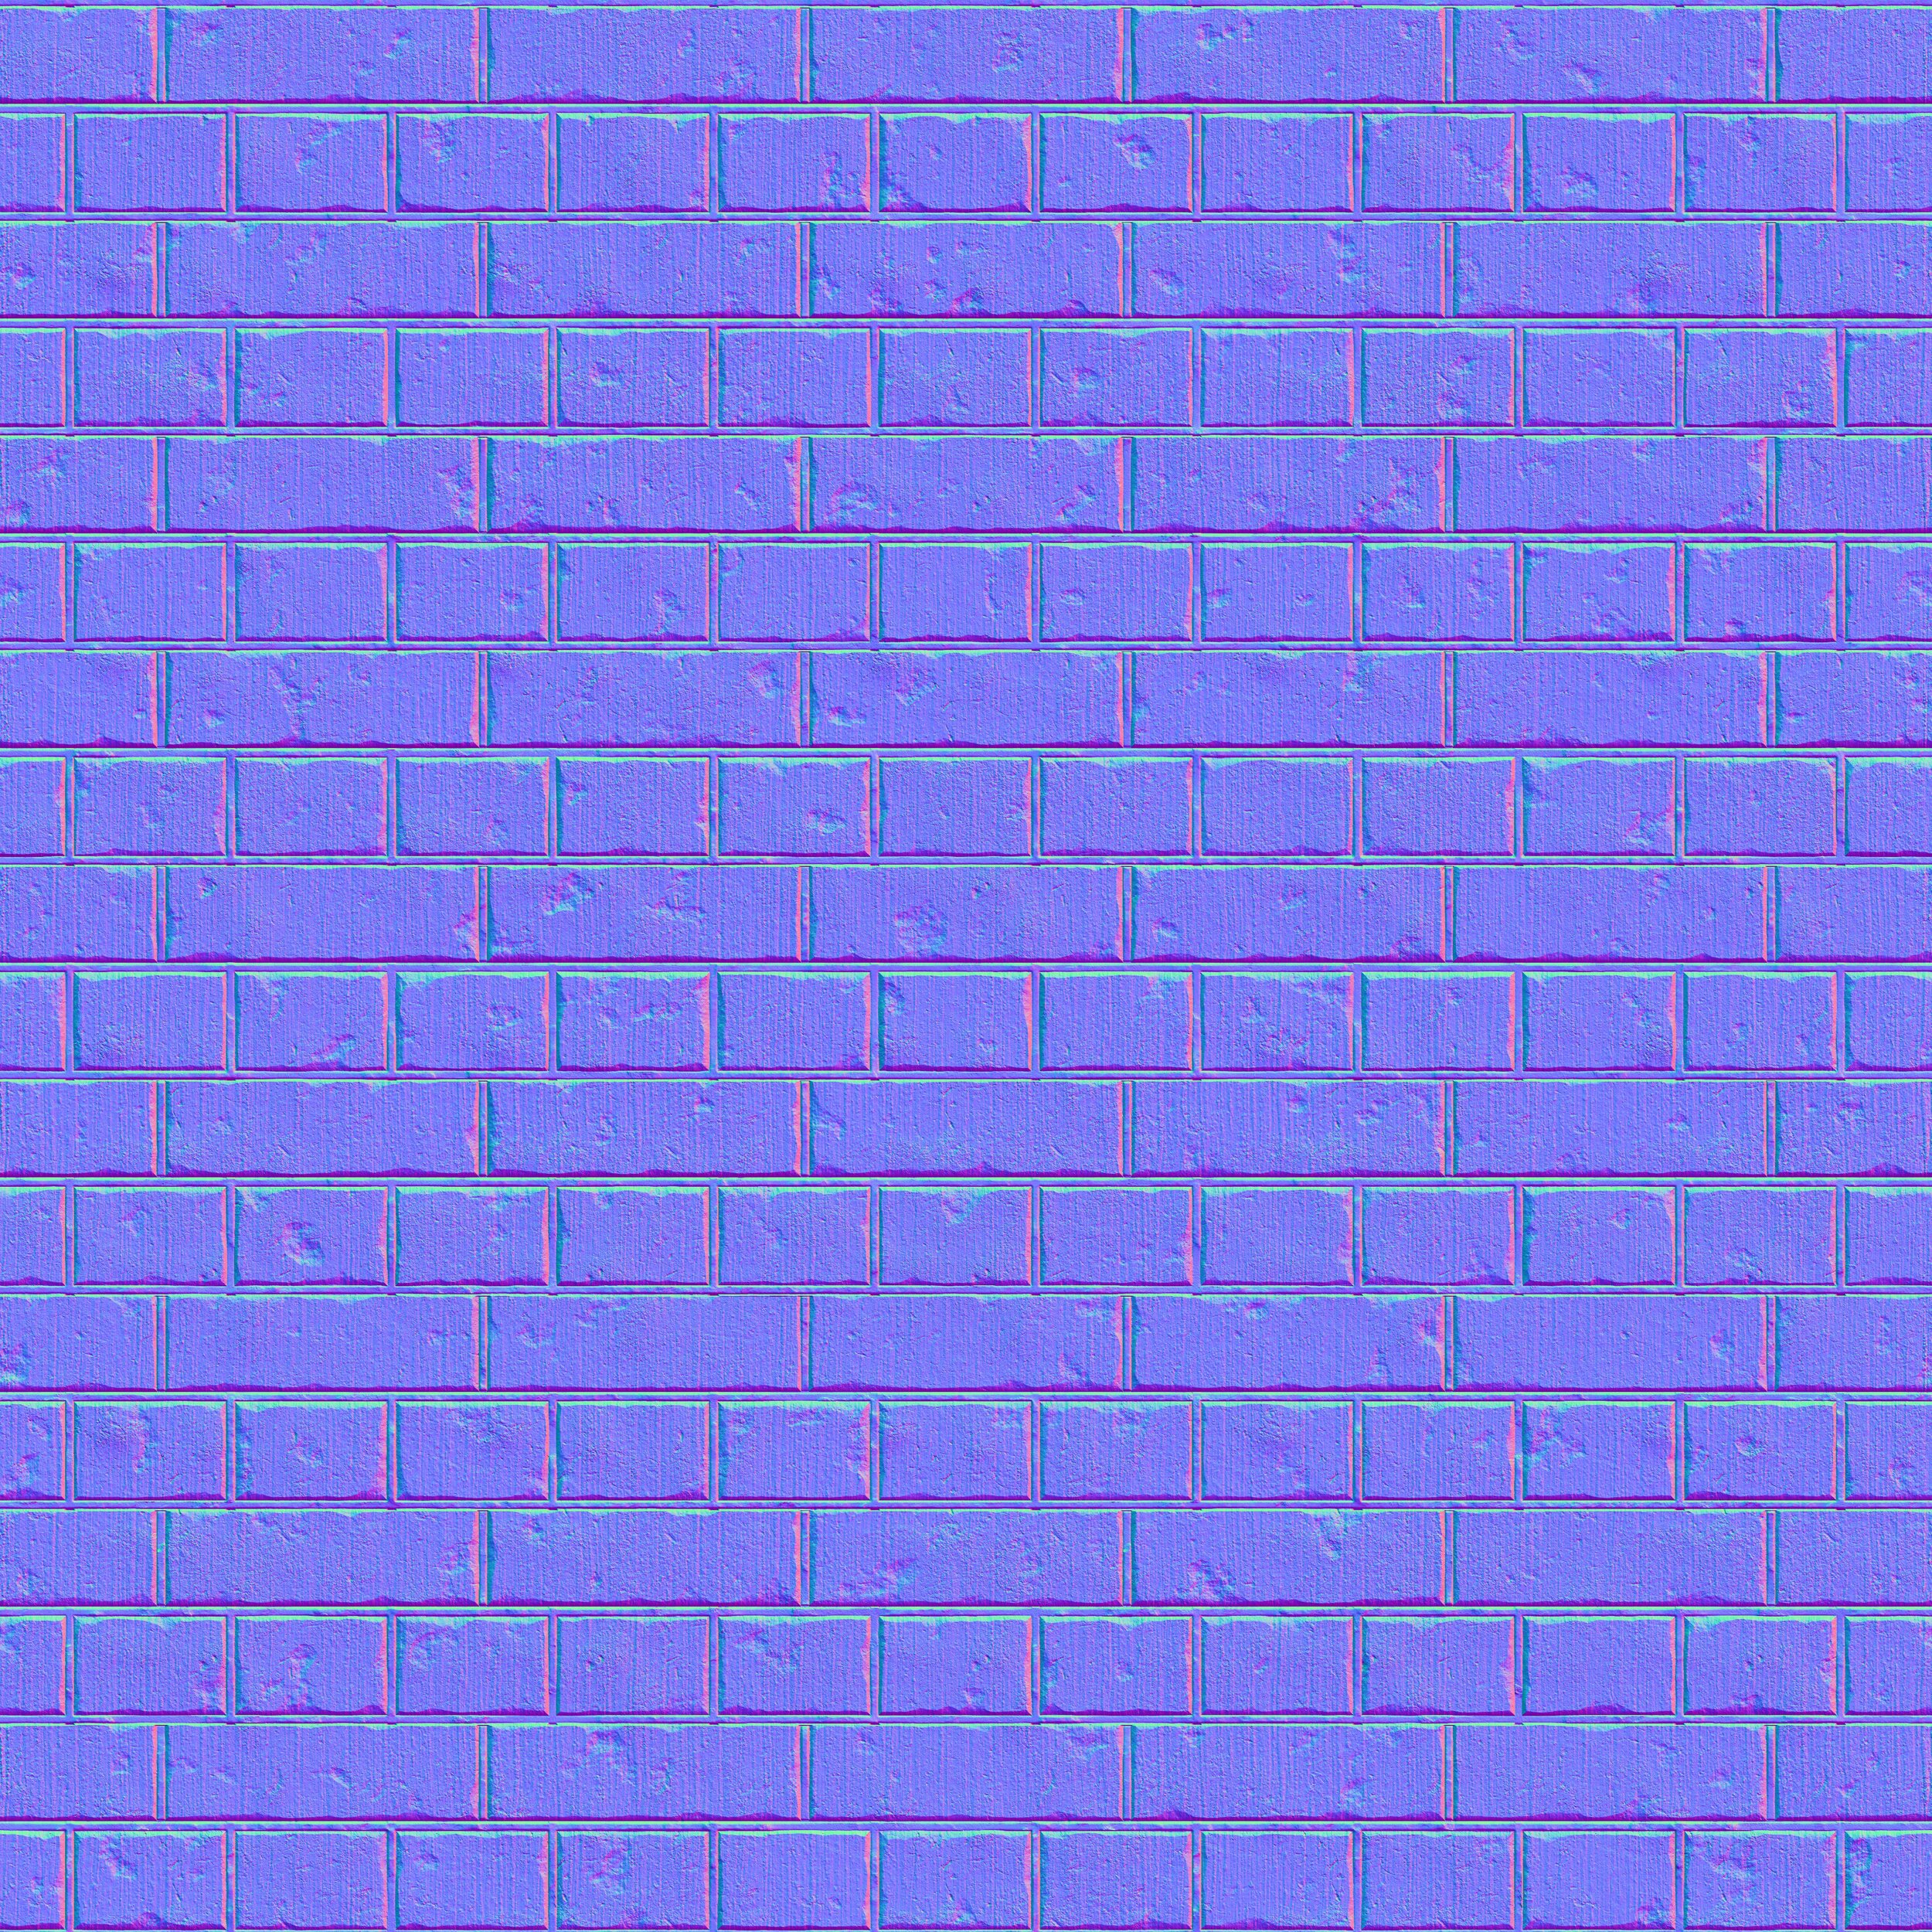 Bricks_AI_01C_Red_NRM.jpg